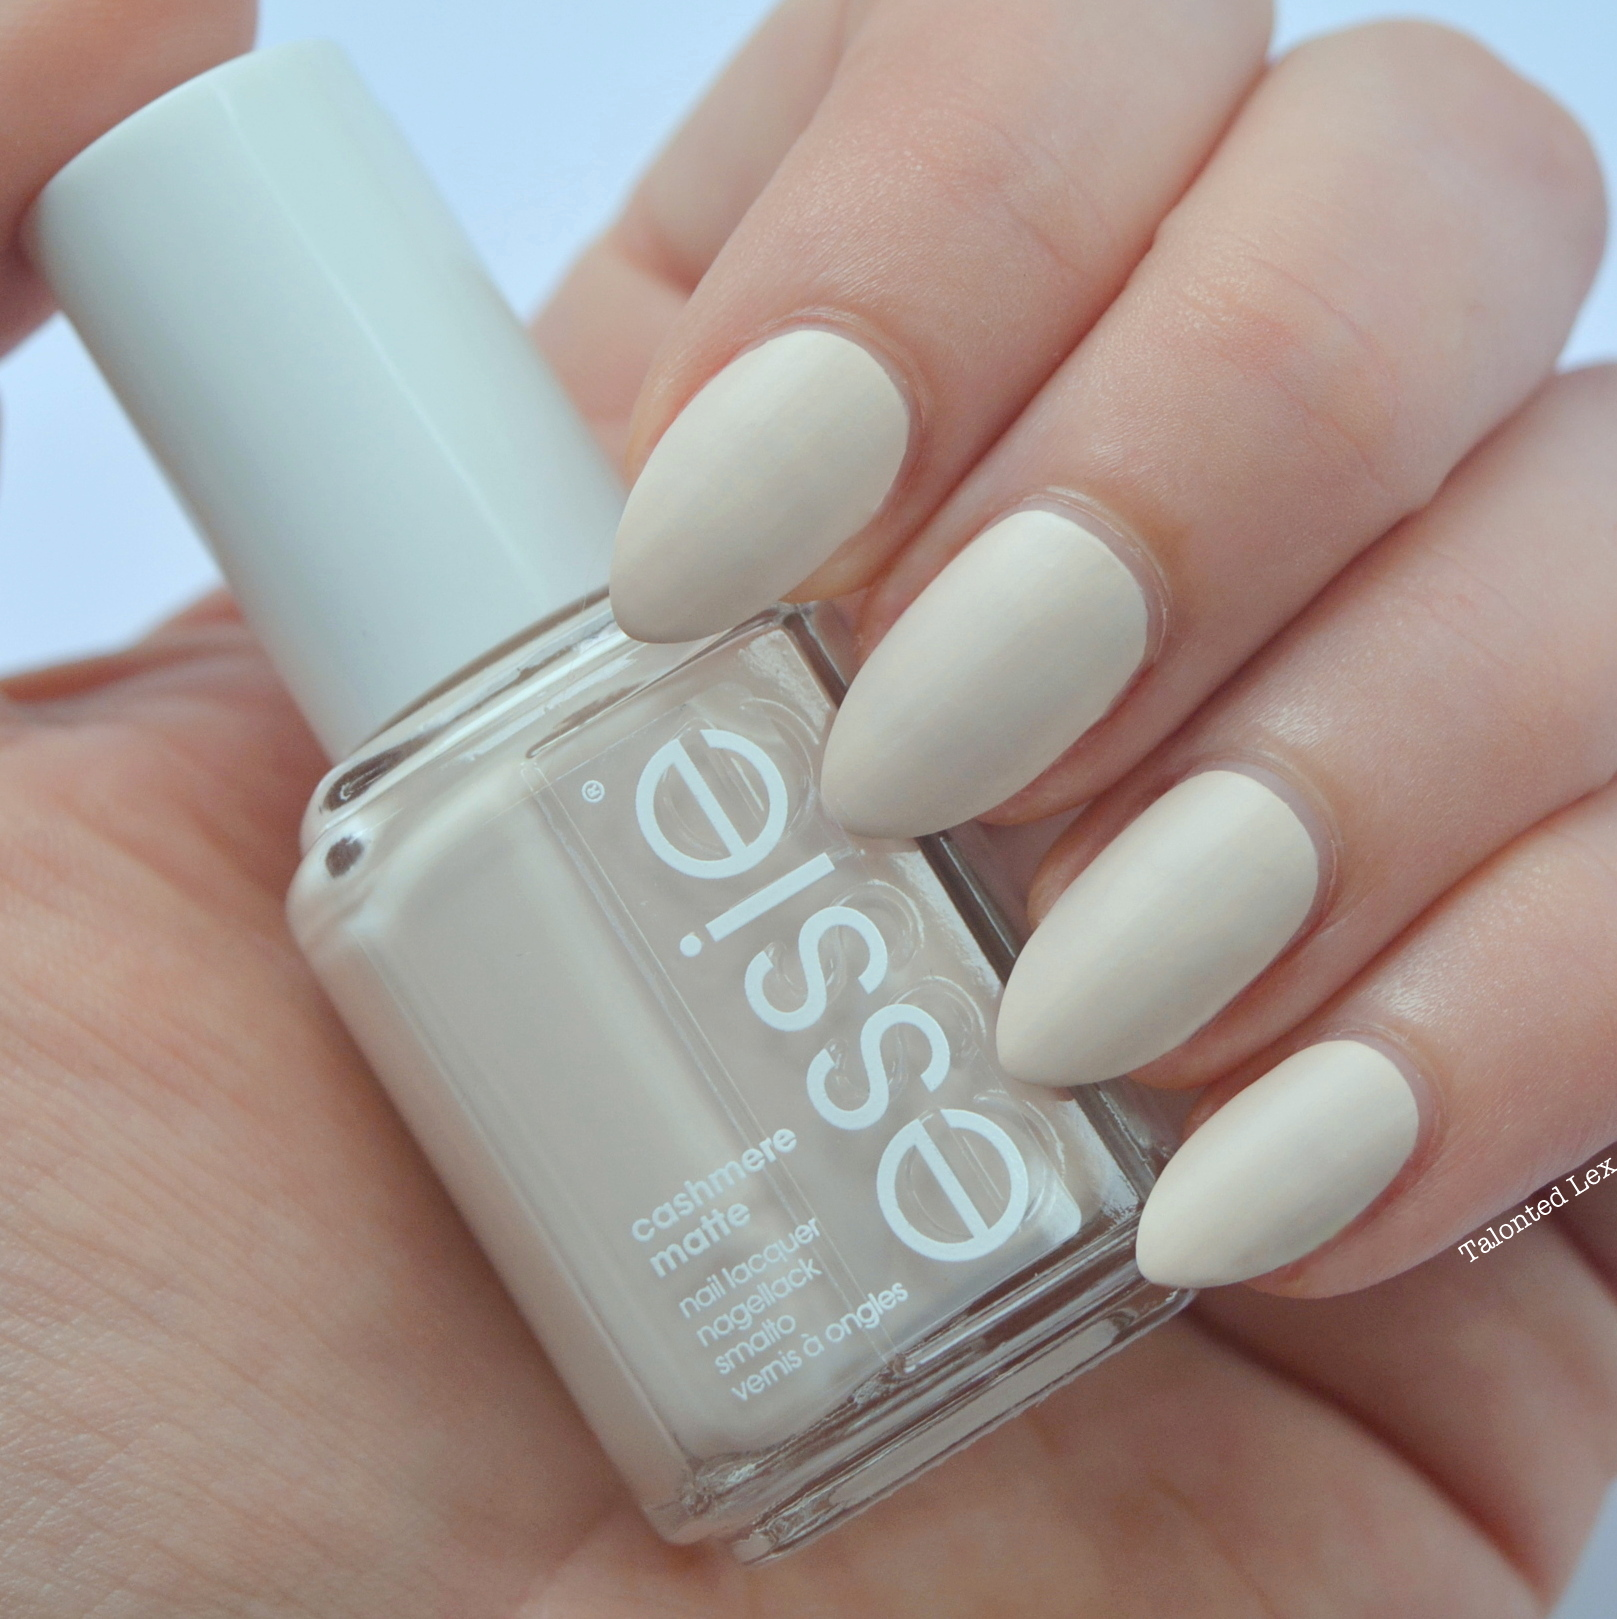 essie-Cashmere-Collection-matte-review-swatches-wrap-me-up-talonted-lex-4